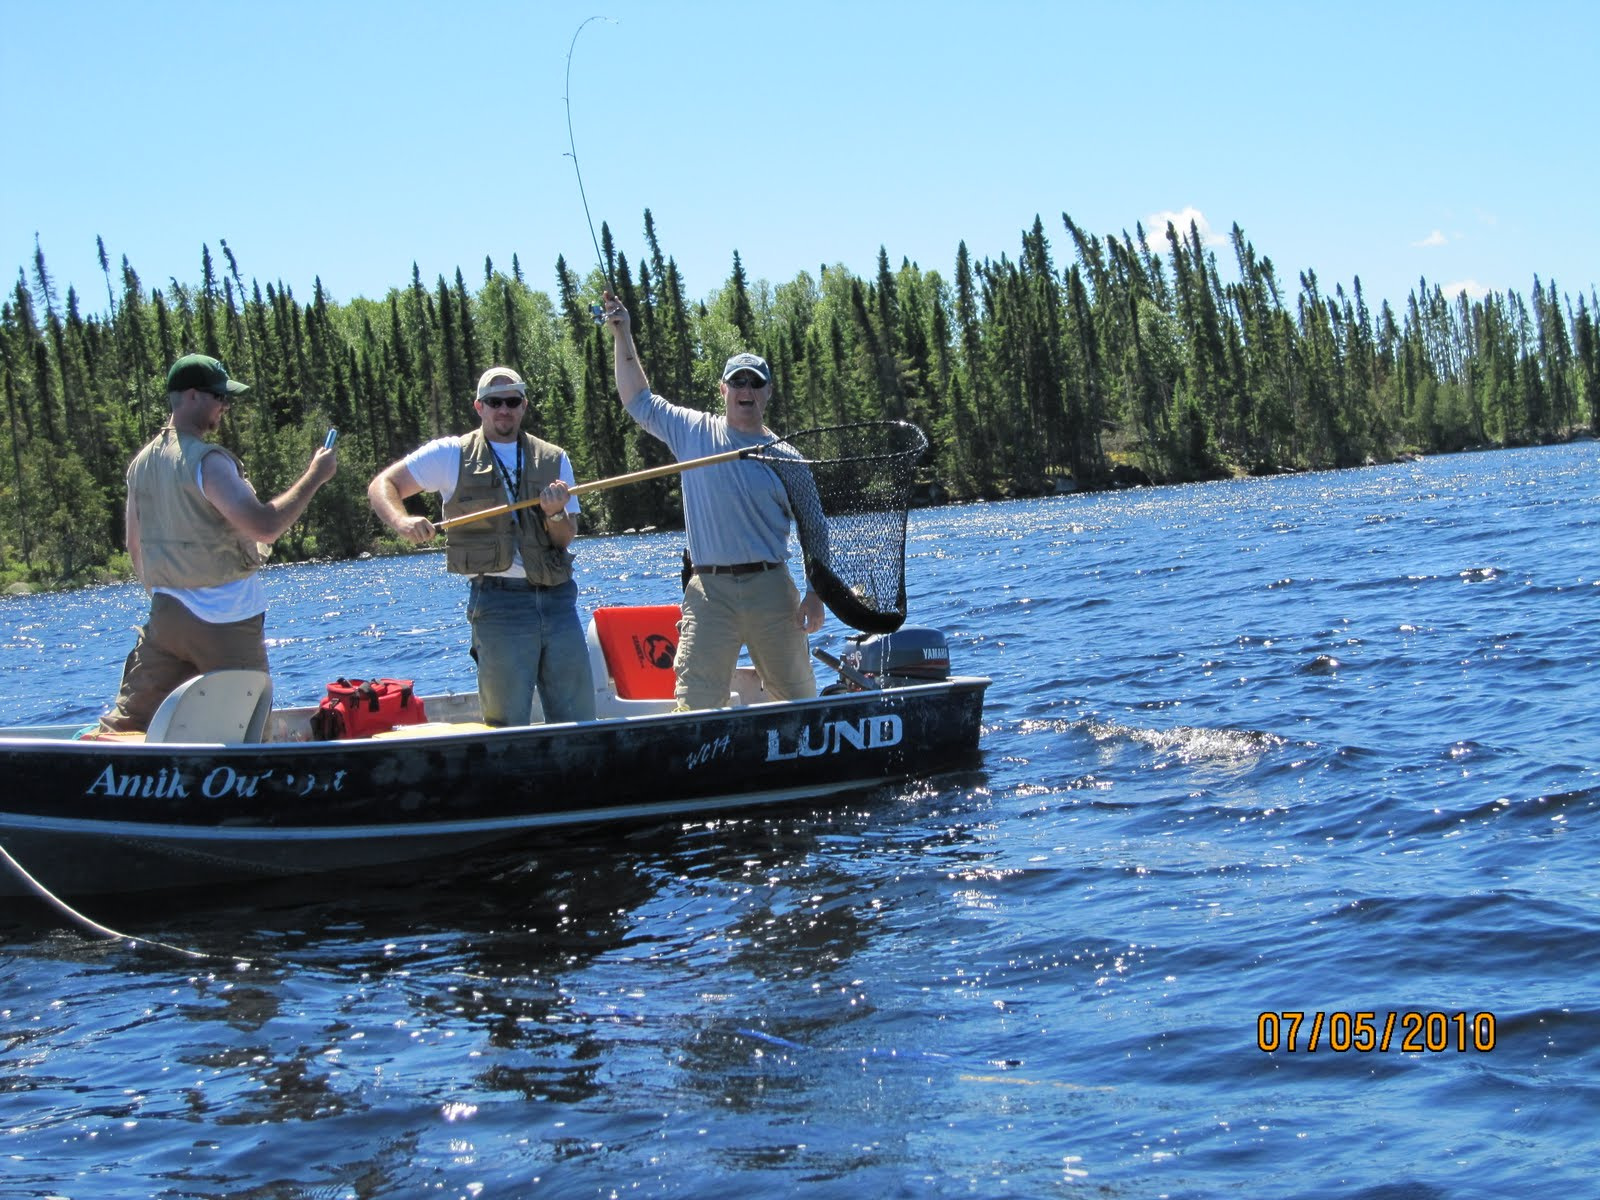 3008 fish 8 people 7 days canadian fly in fishing for Canadian fly in fishing